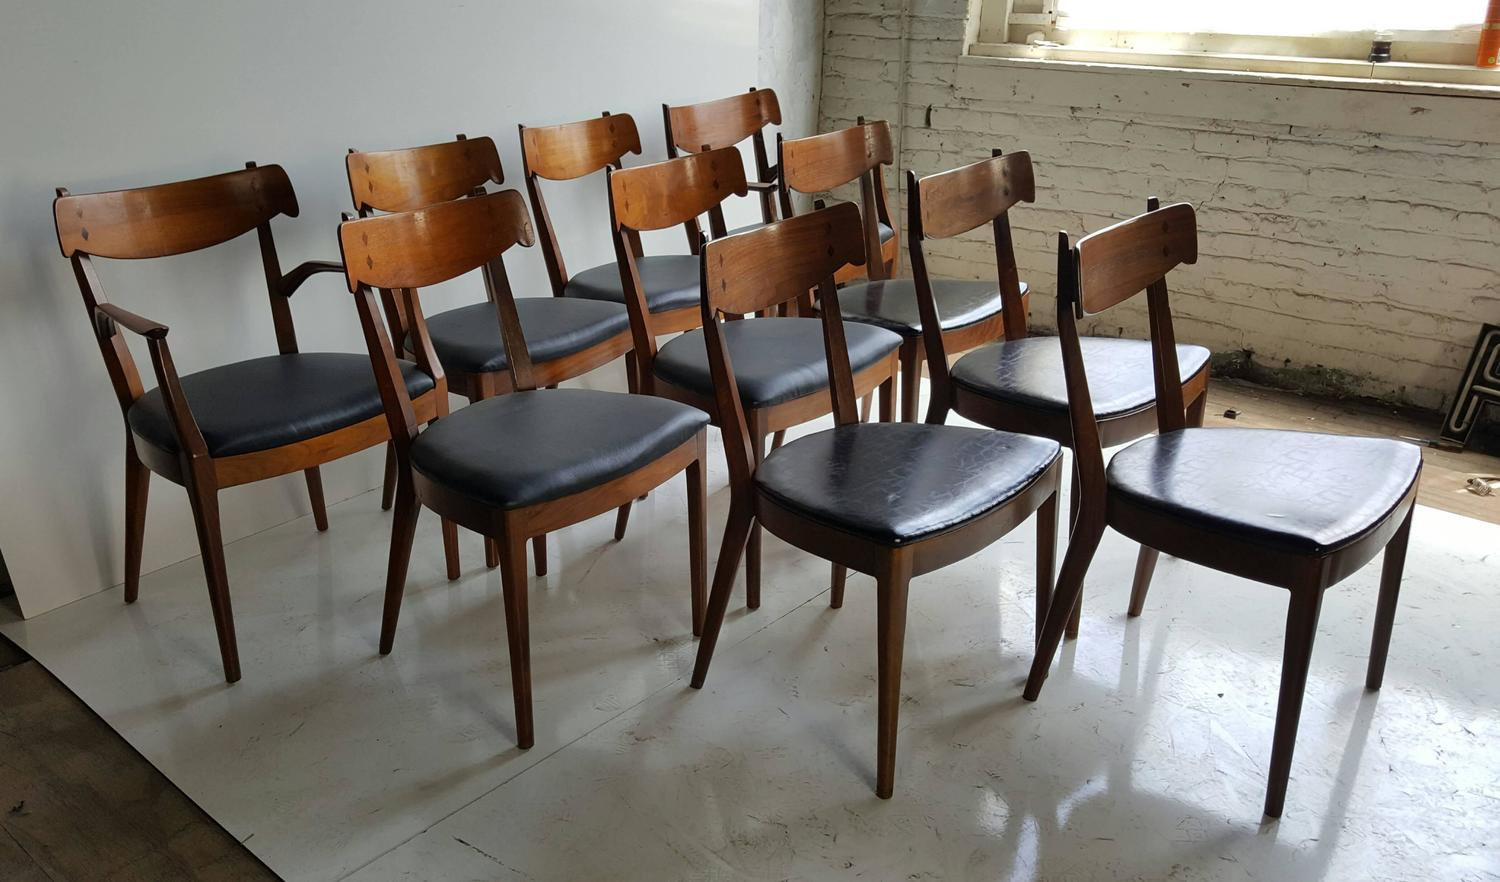 century dining chairs by kipp stewart for drexel for sale at 1stdibs